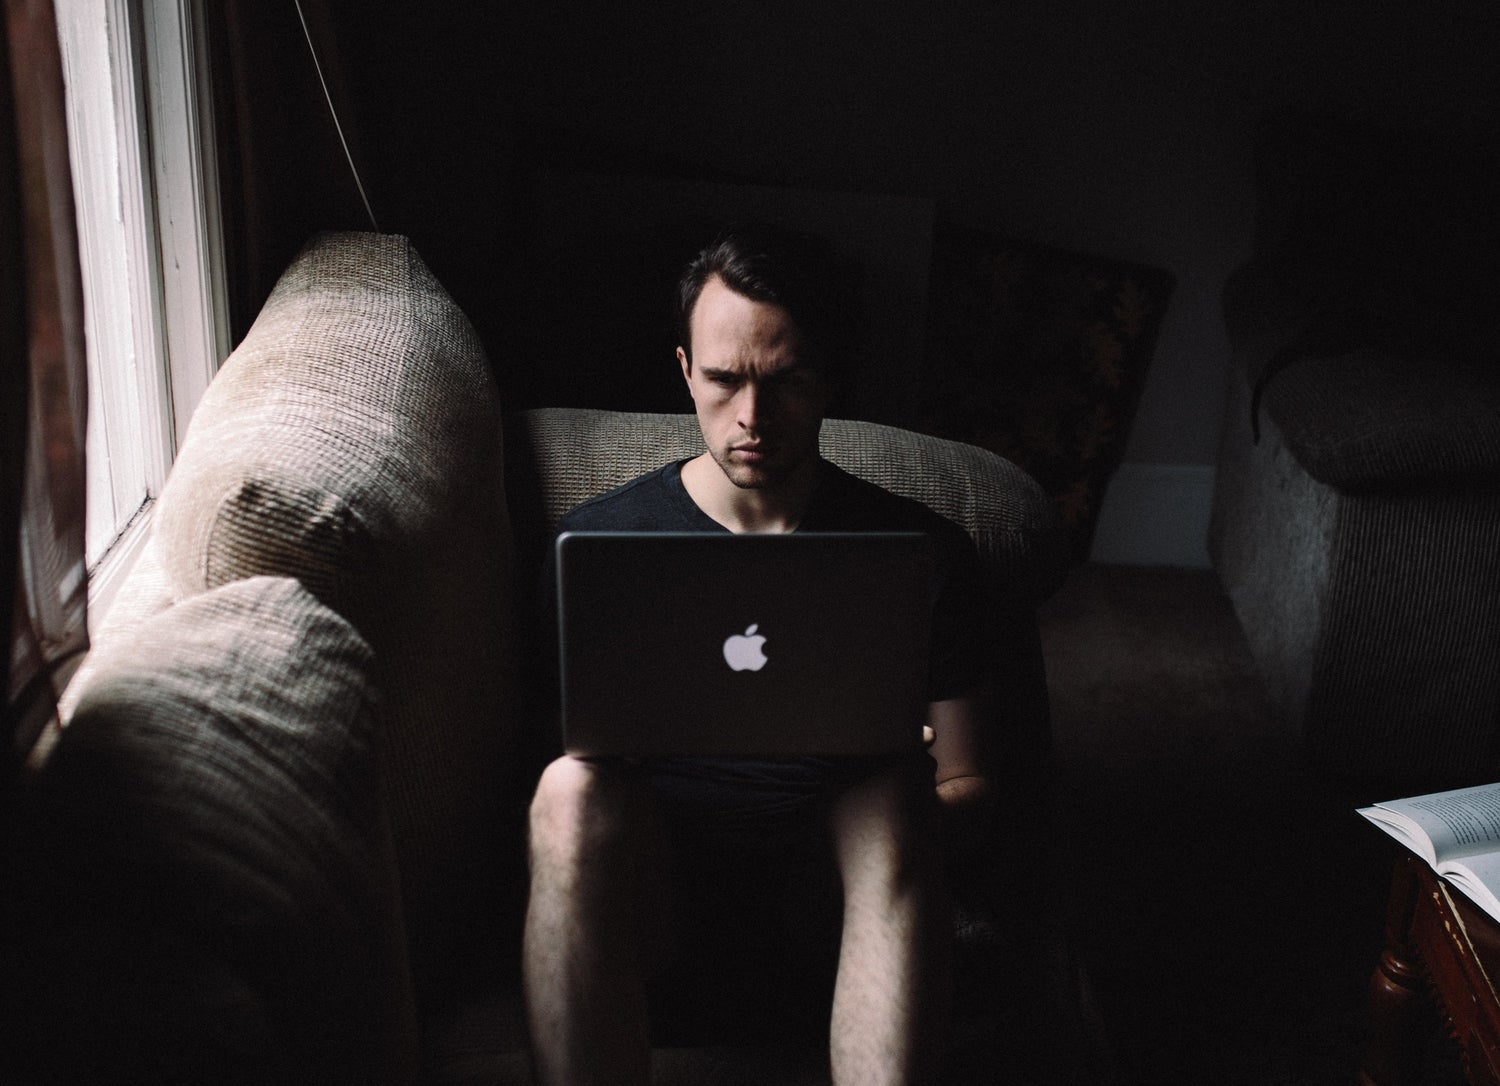 a man sitting solemnly on a couch in the dark with his Apple Mac laptop